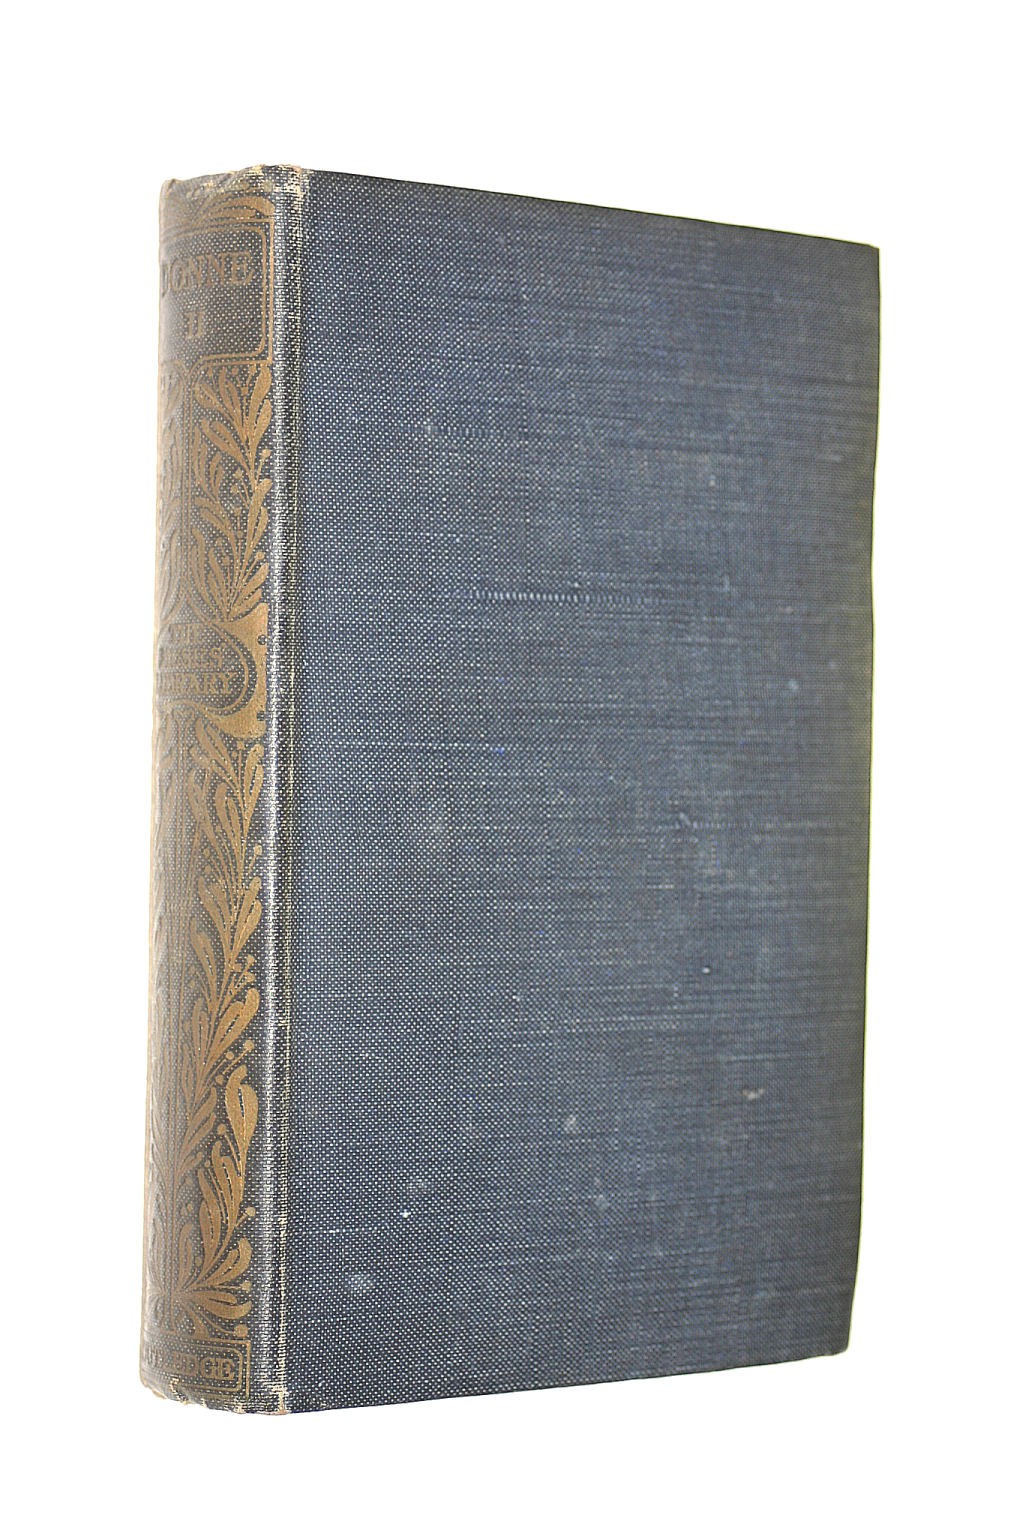 Image for Poems Of John Donne (The Muses' Library) Vol. Ii